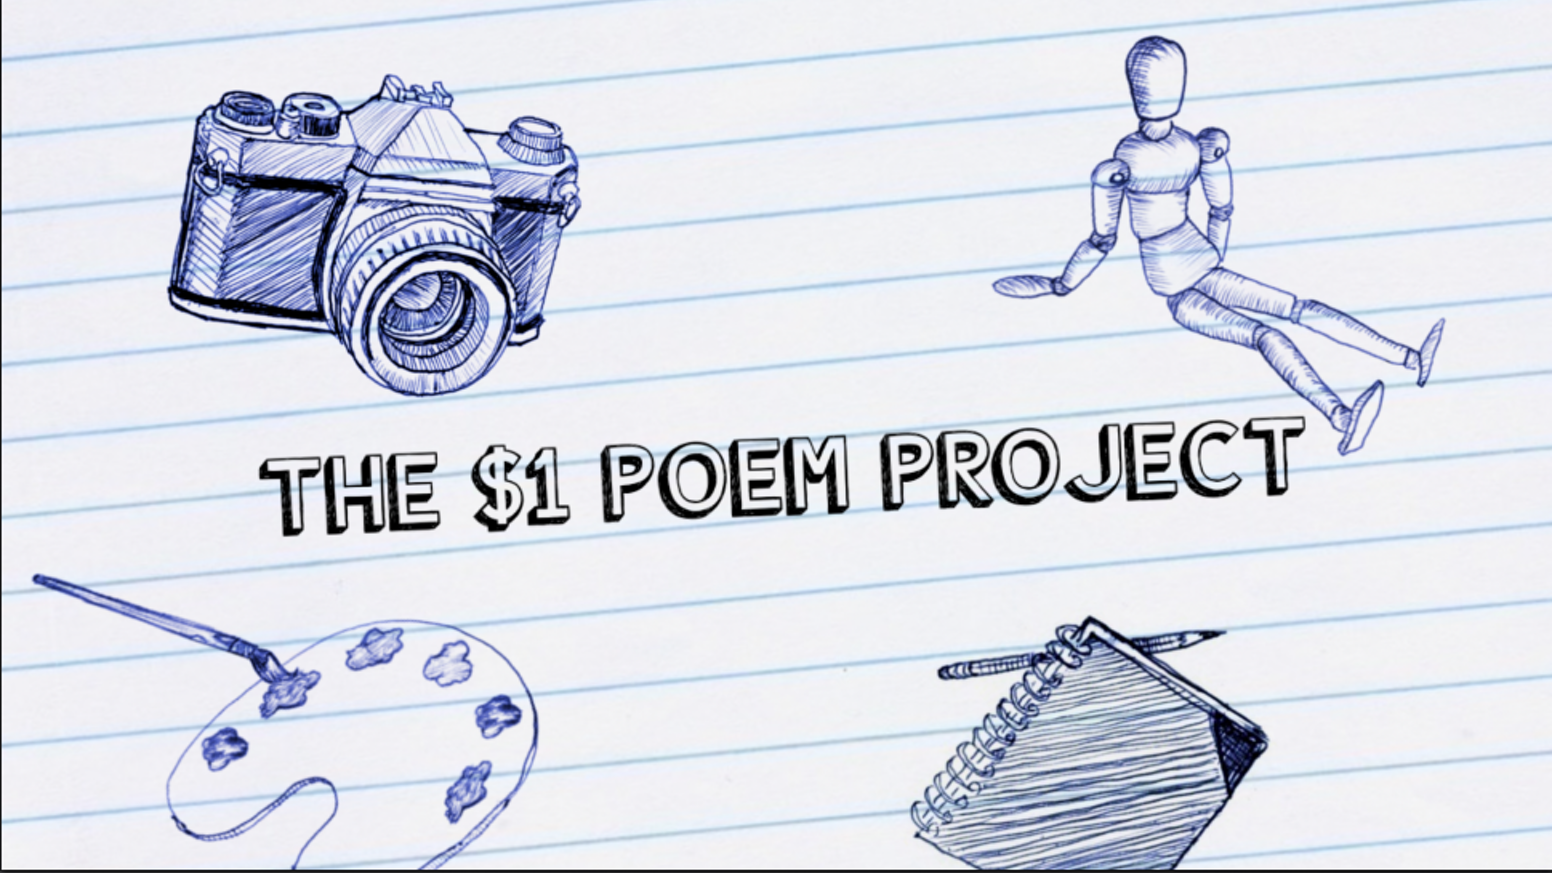 For $1, You choose the topic, I write the poem & mail it straight to You.